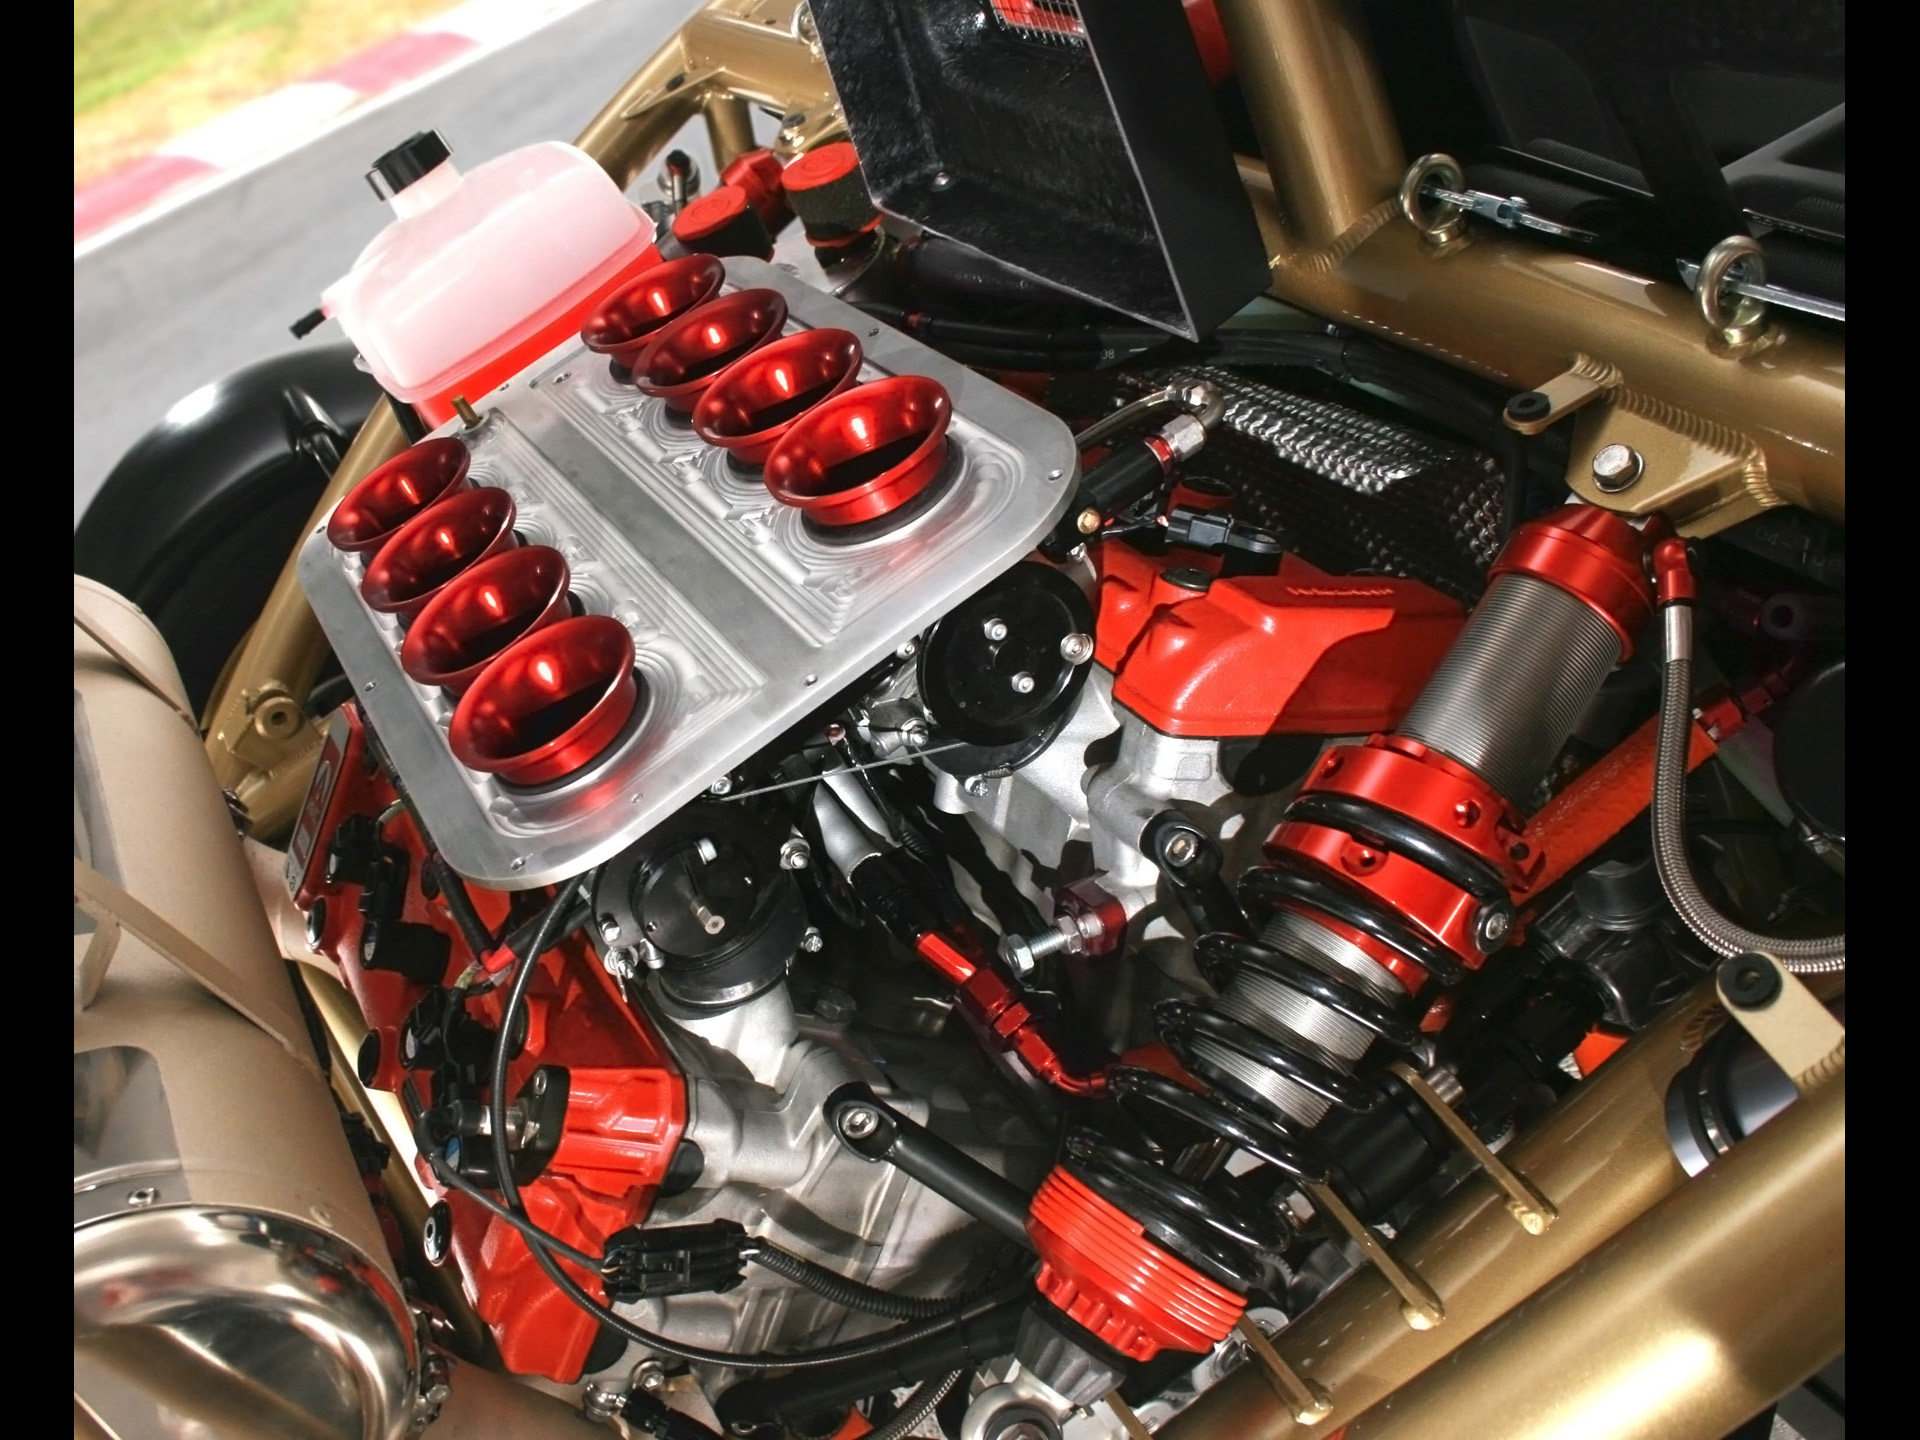 The Atom V8 engine PHOTO: SeriousWheels